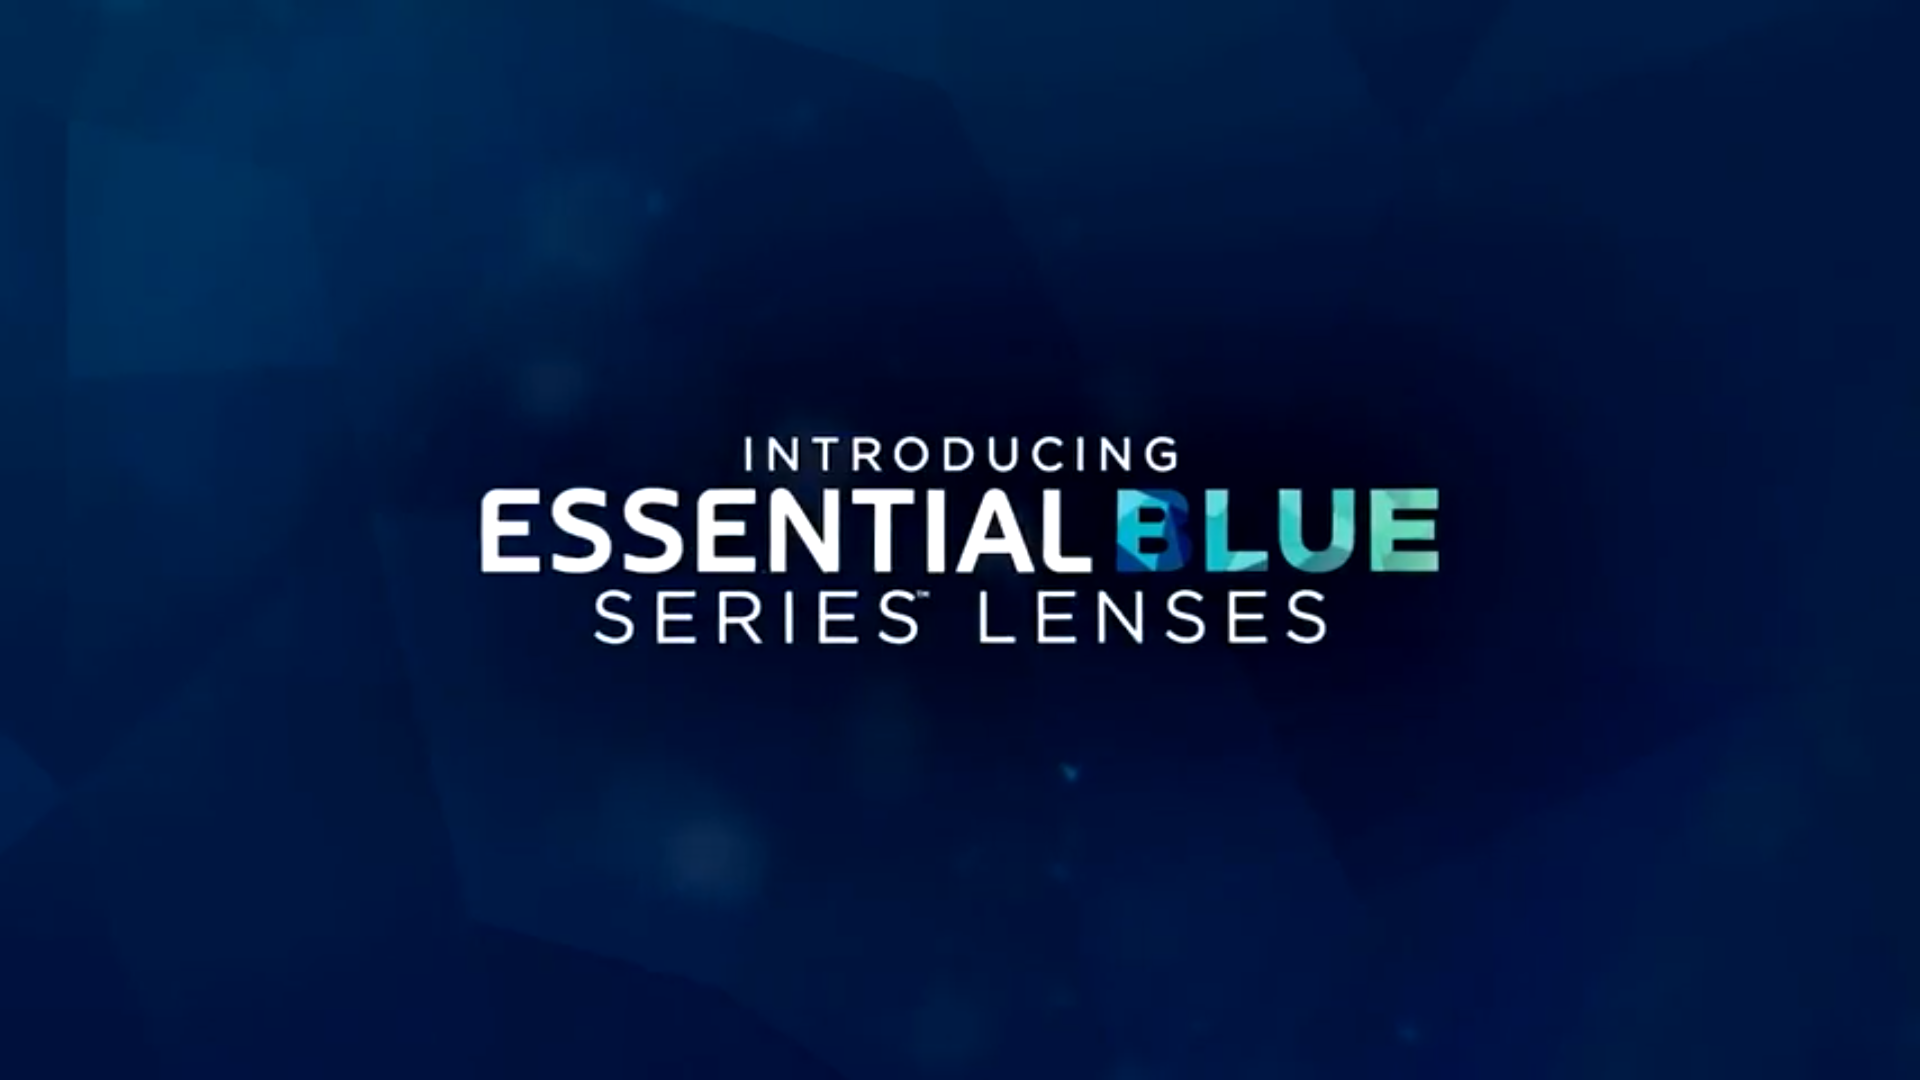 Introducing Essential Blue Series™ Lenses